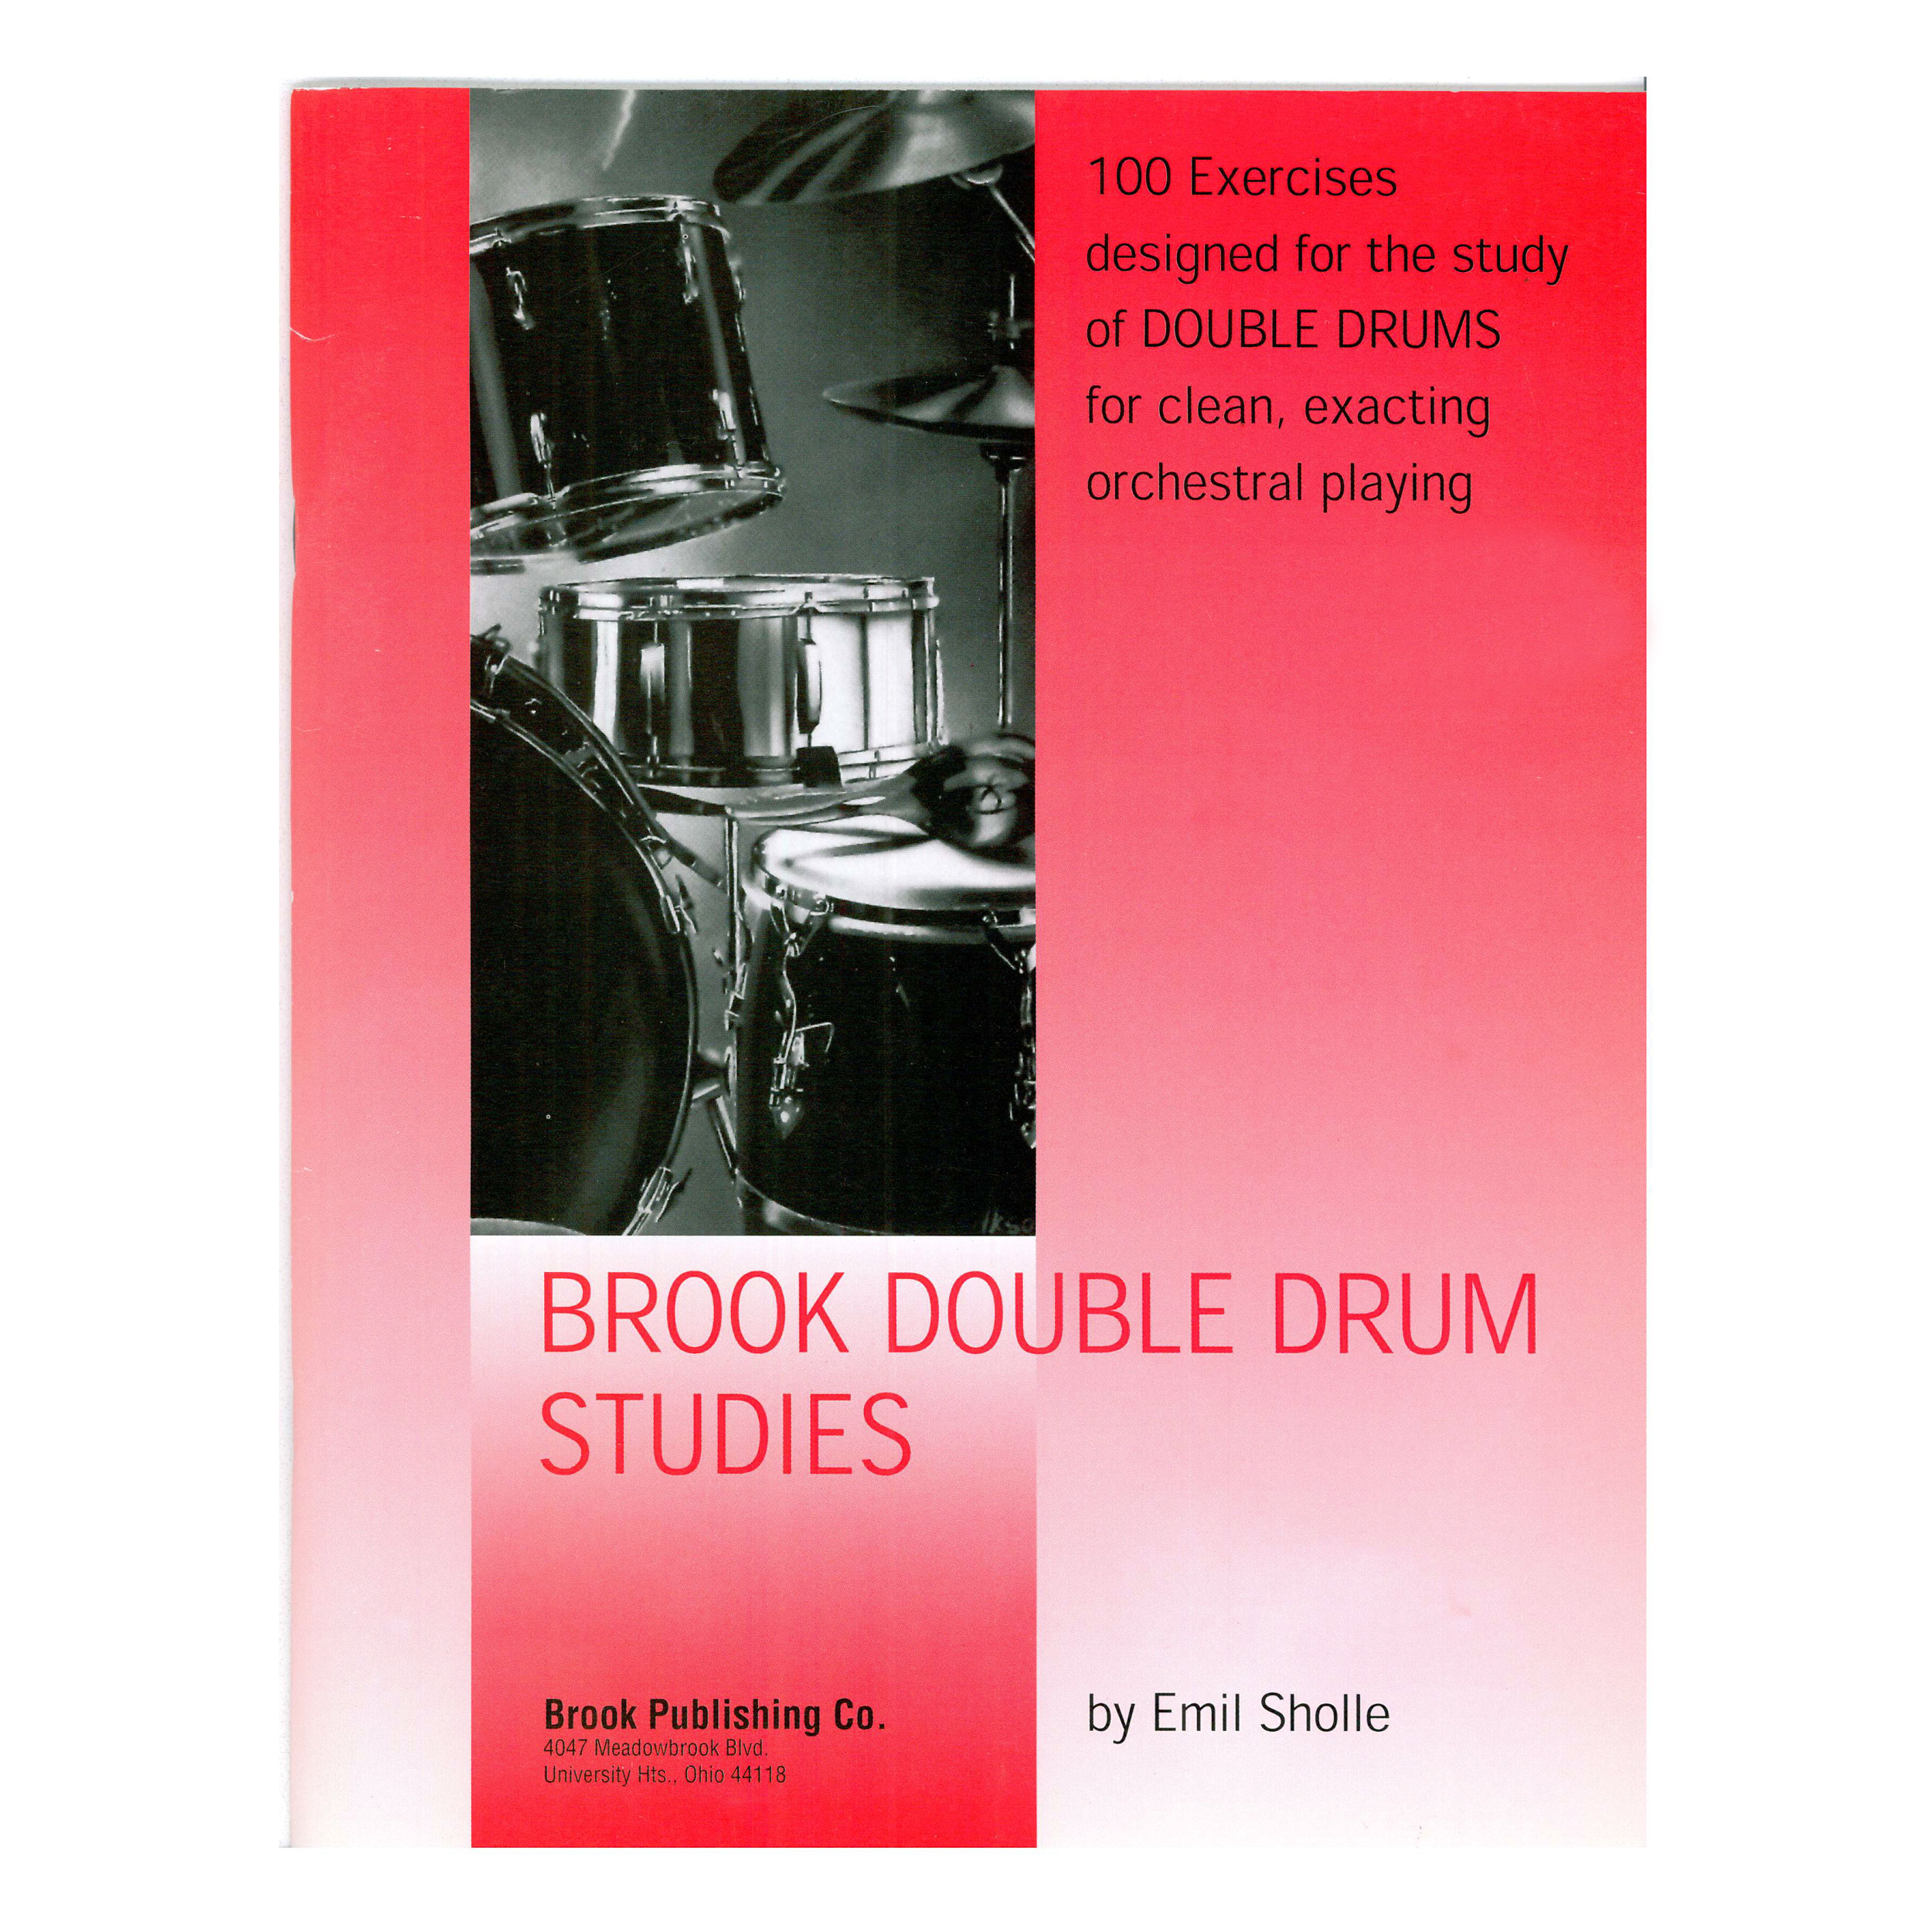 Brook Double Drum Studies by Emil Sholle